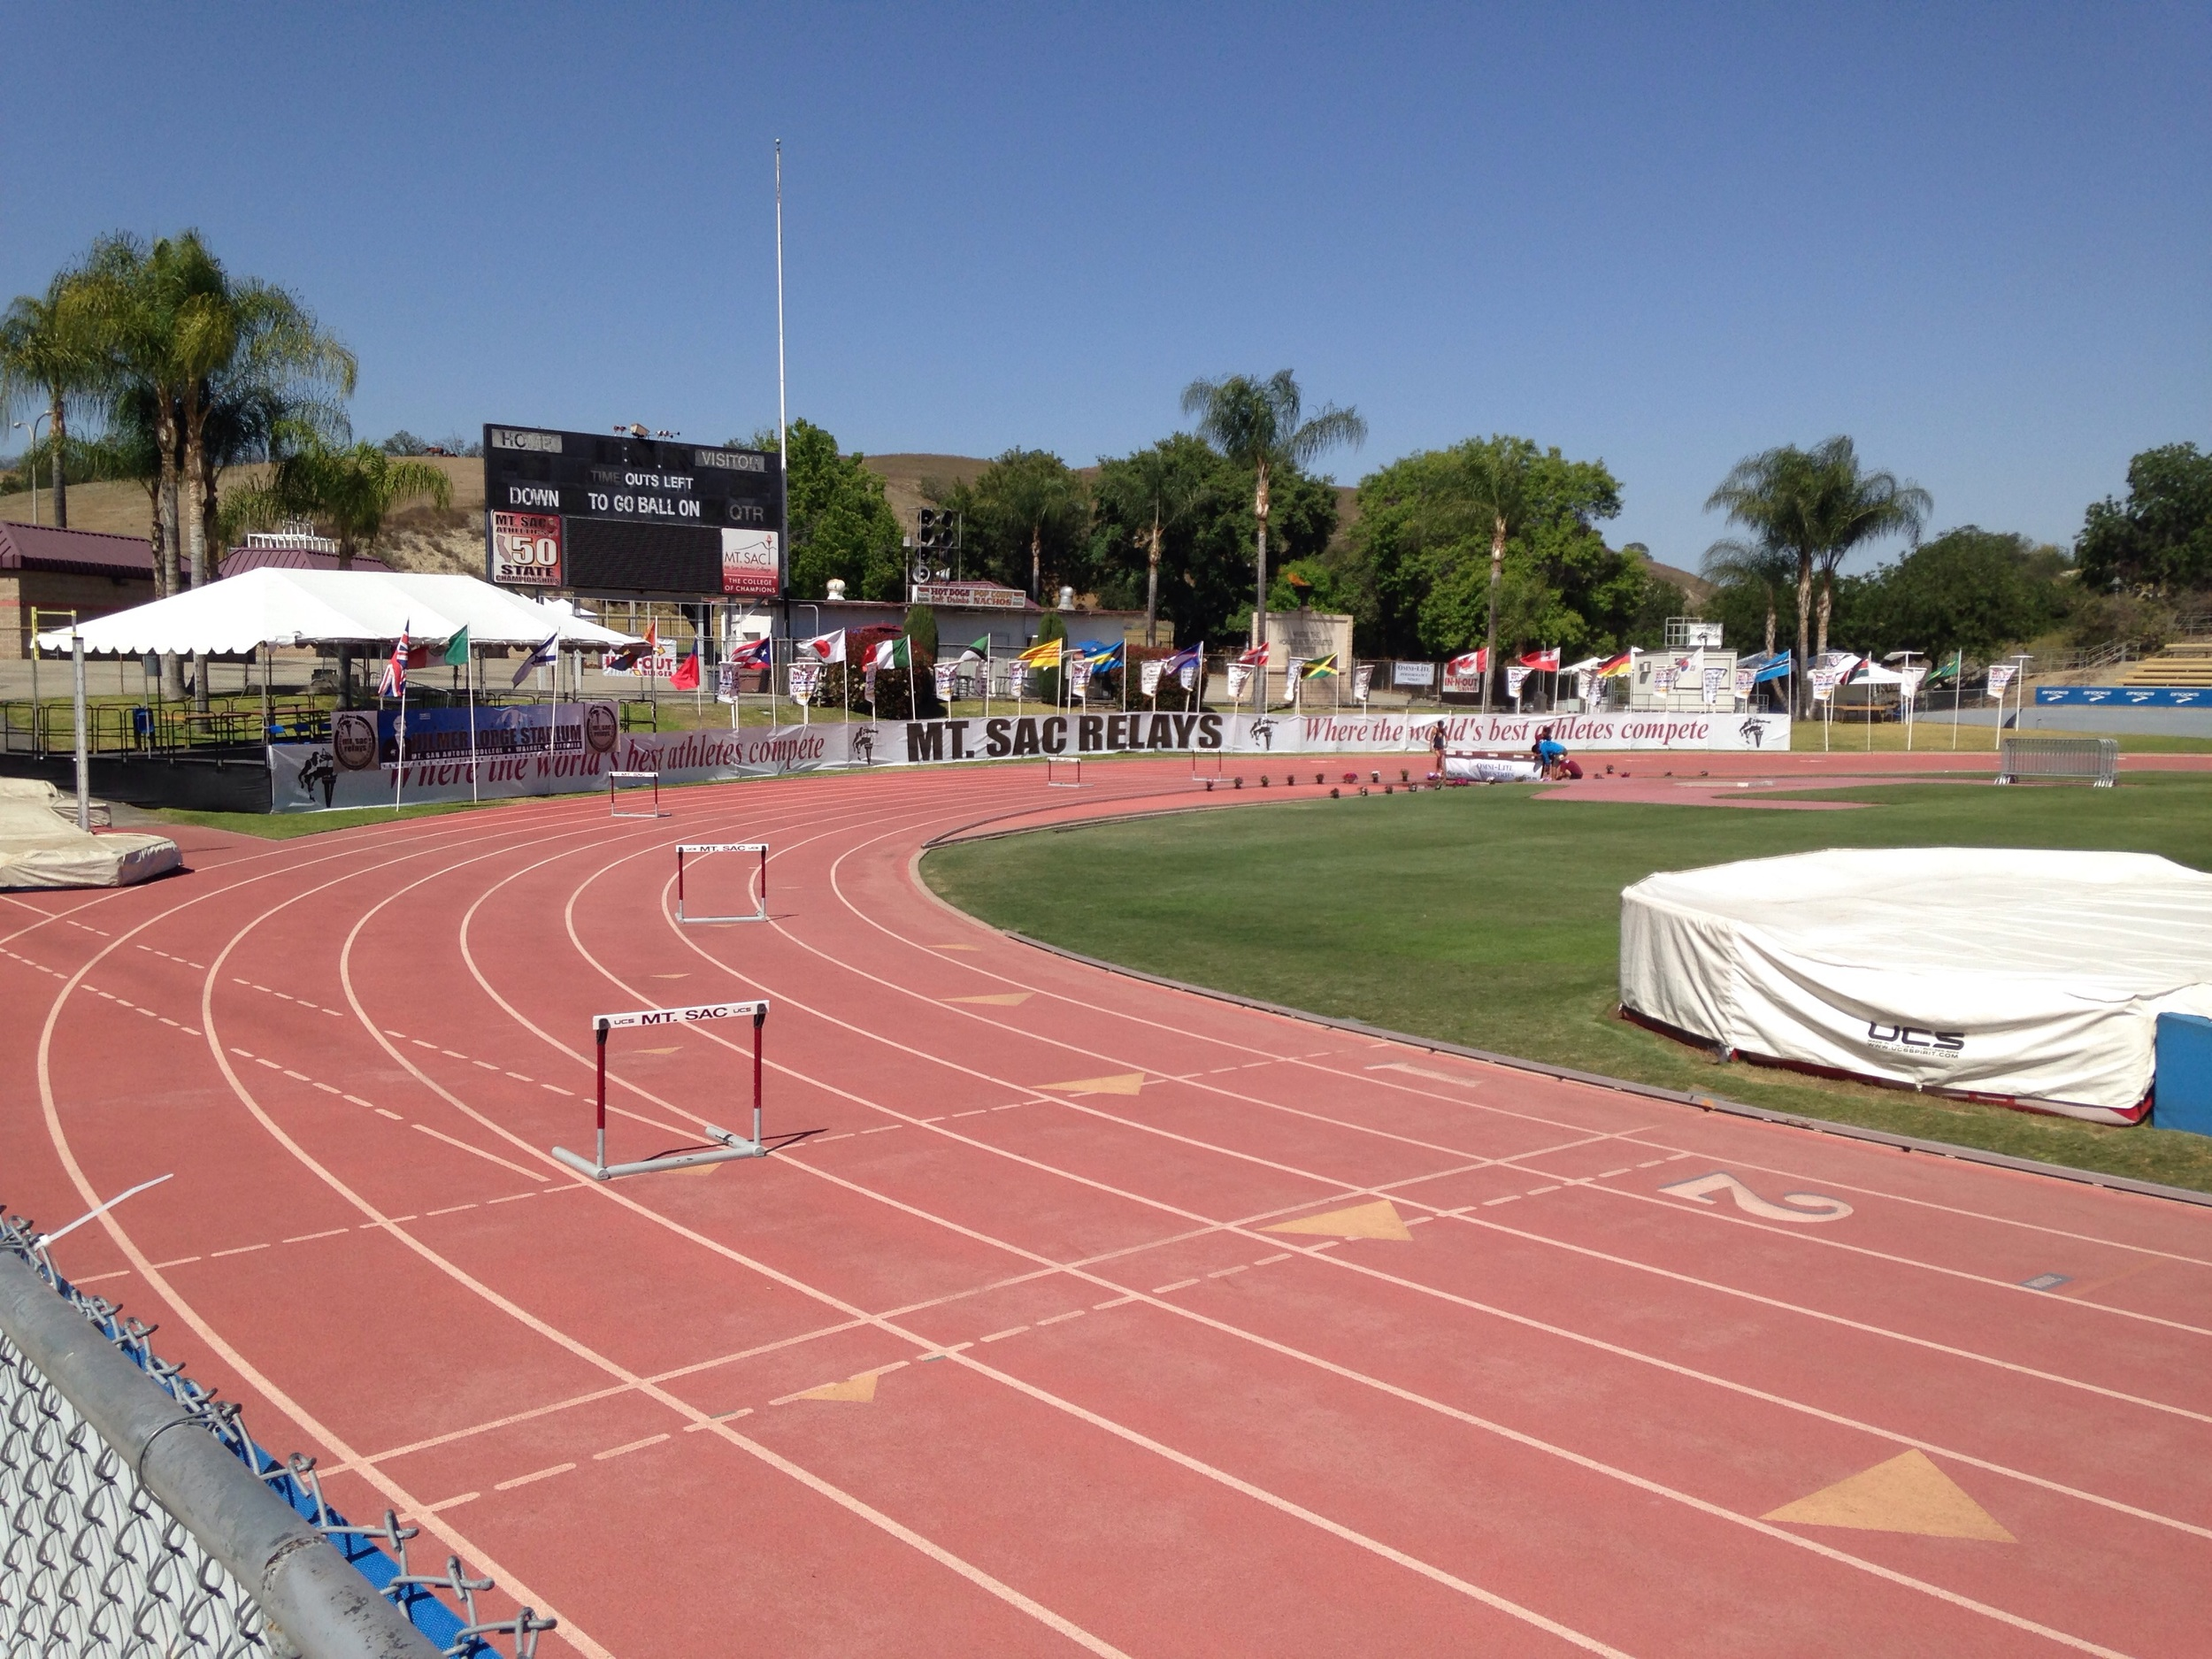 Track meet weather and big meets | This was Mt. Sac Relays.